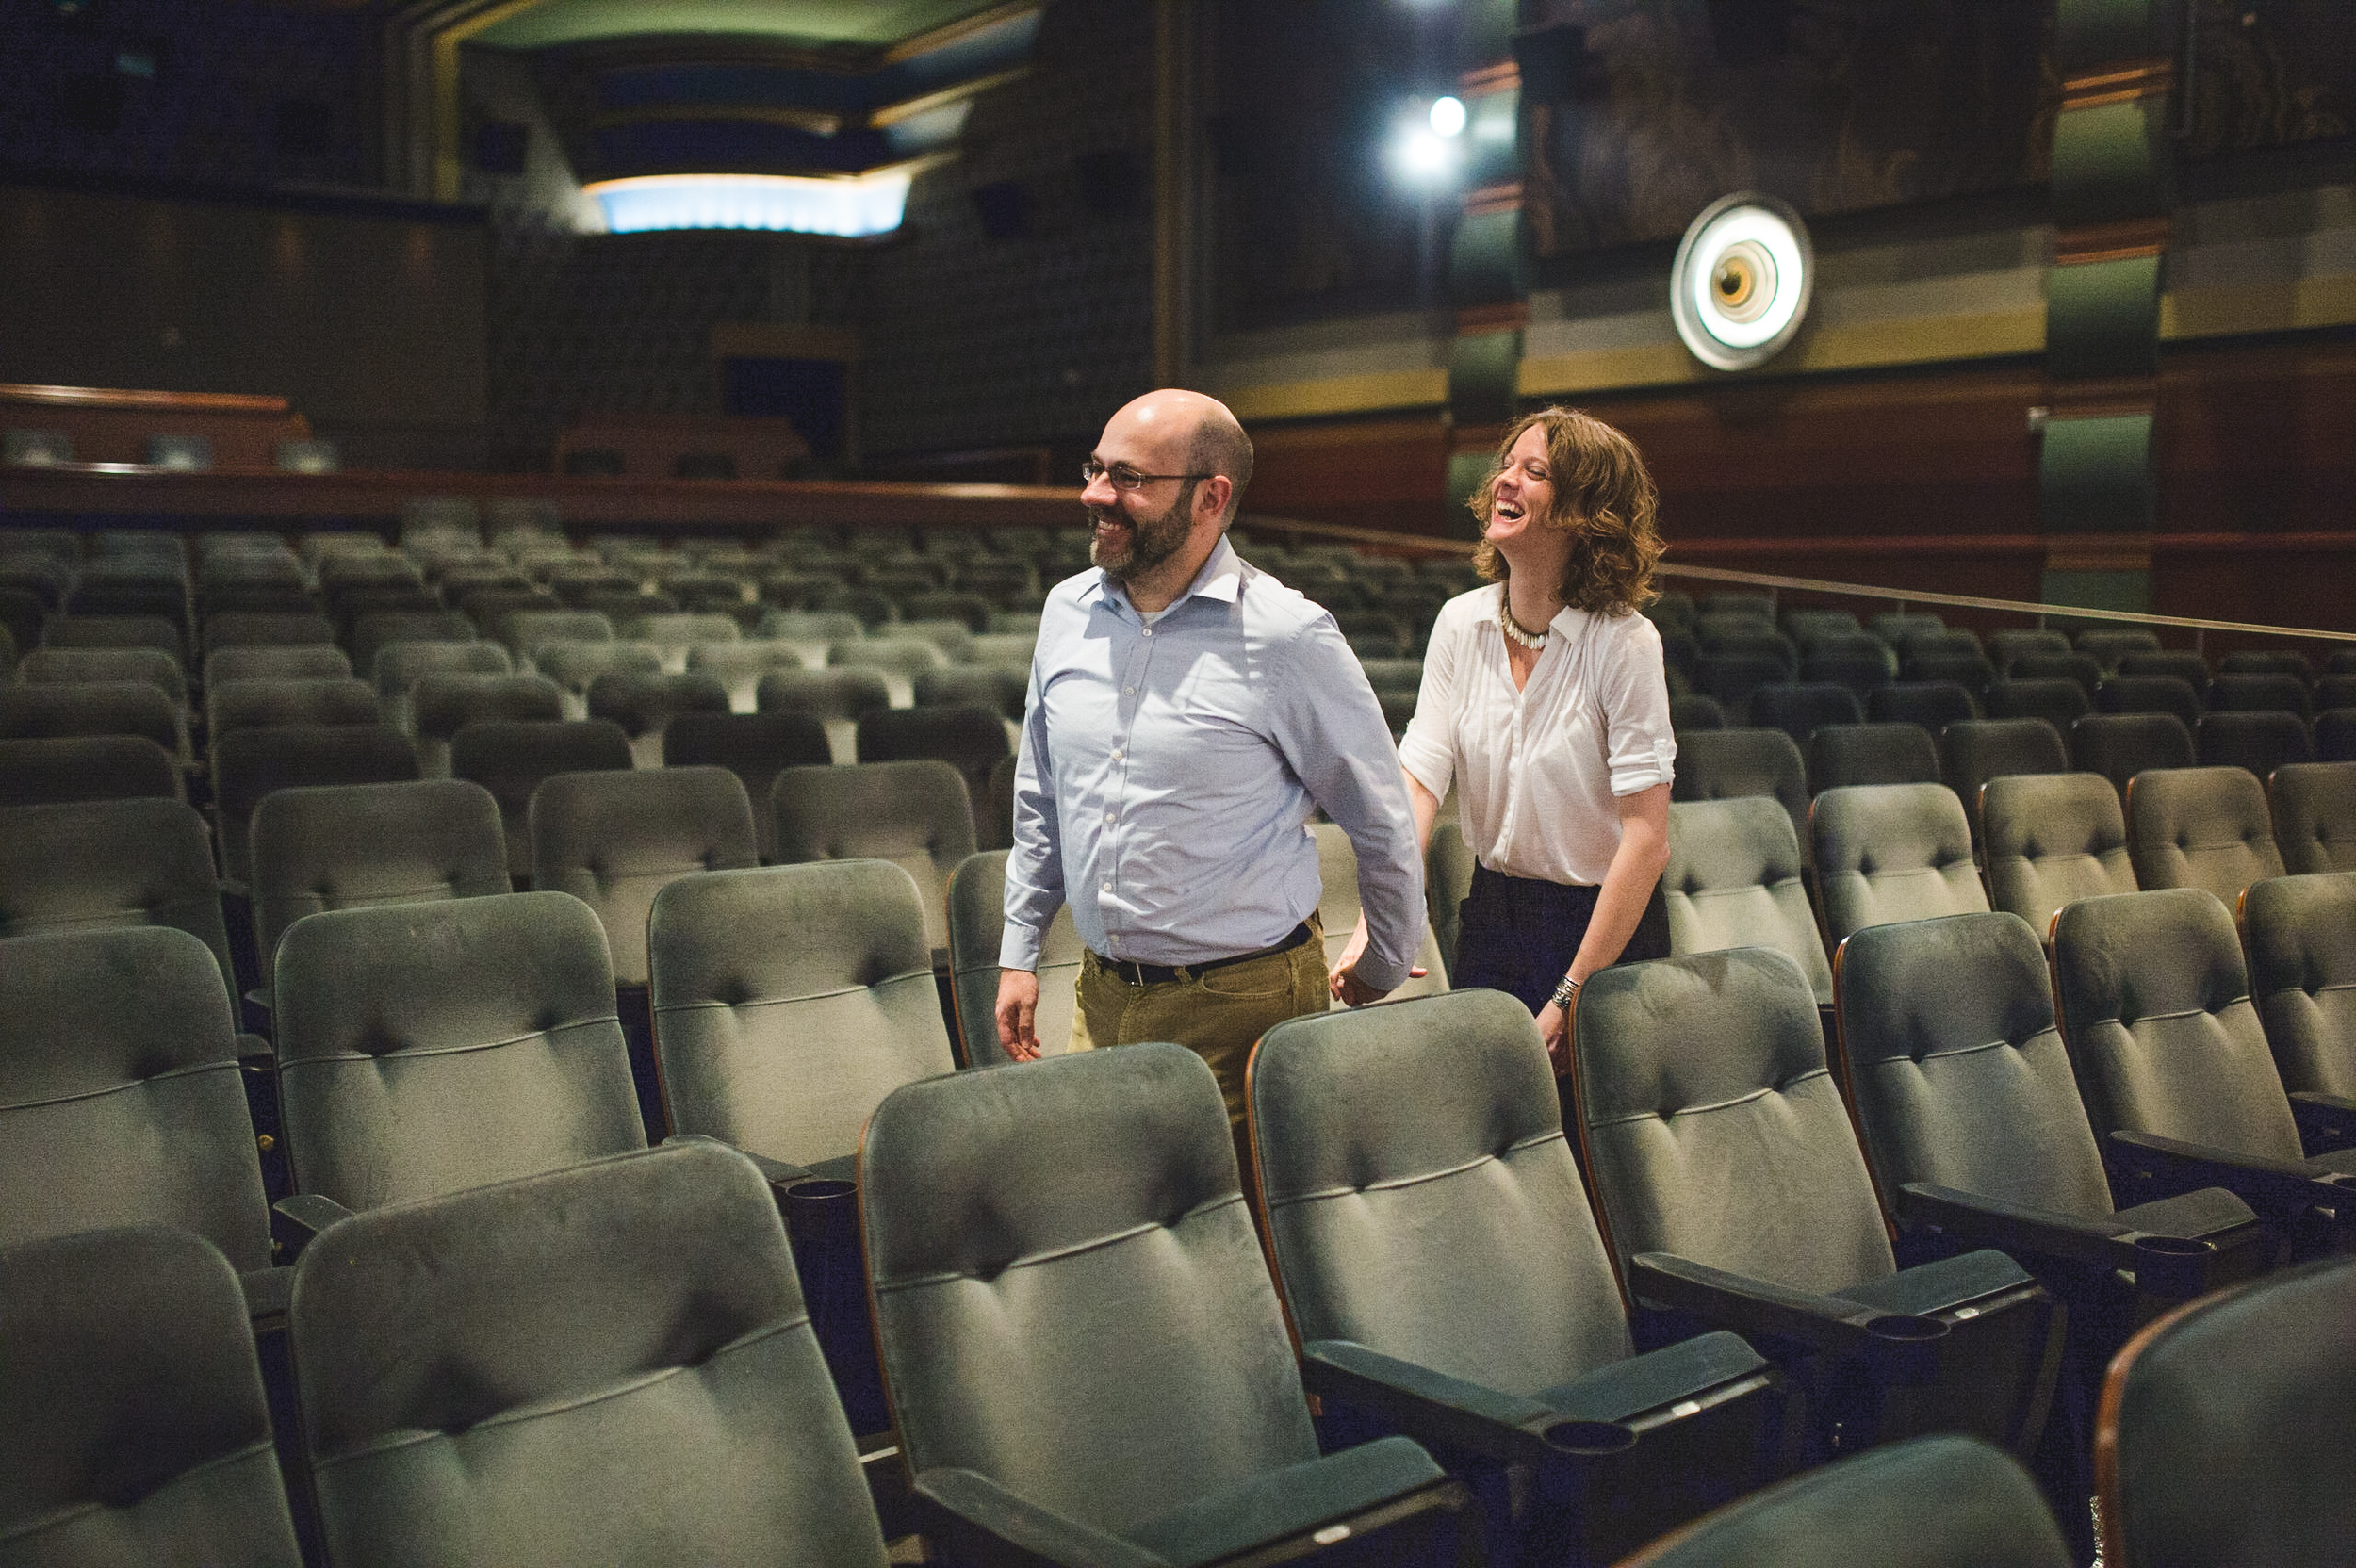 Silver Spring AFI Movie theater Engagement Session Photographer Mantas Kubilinskas-4.jpg